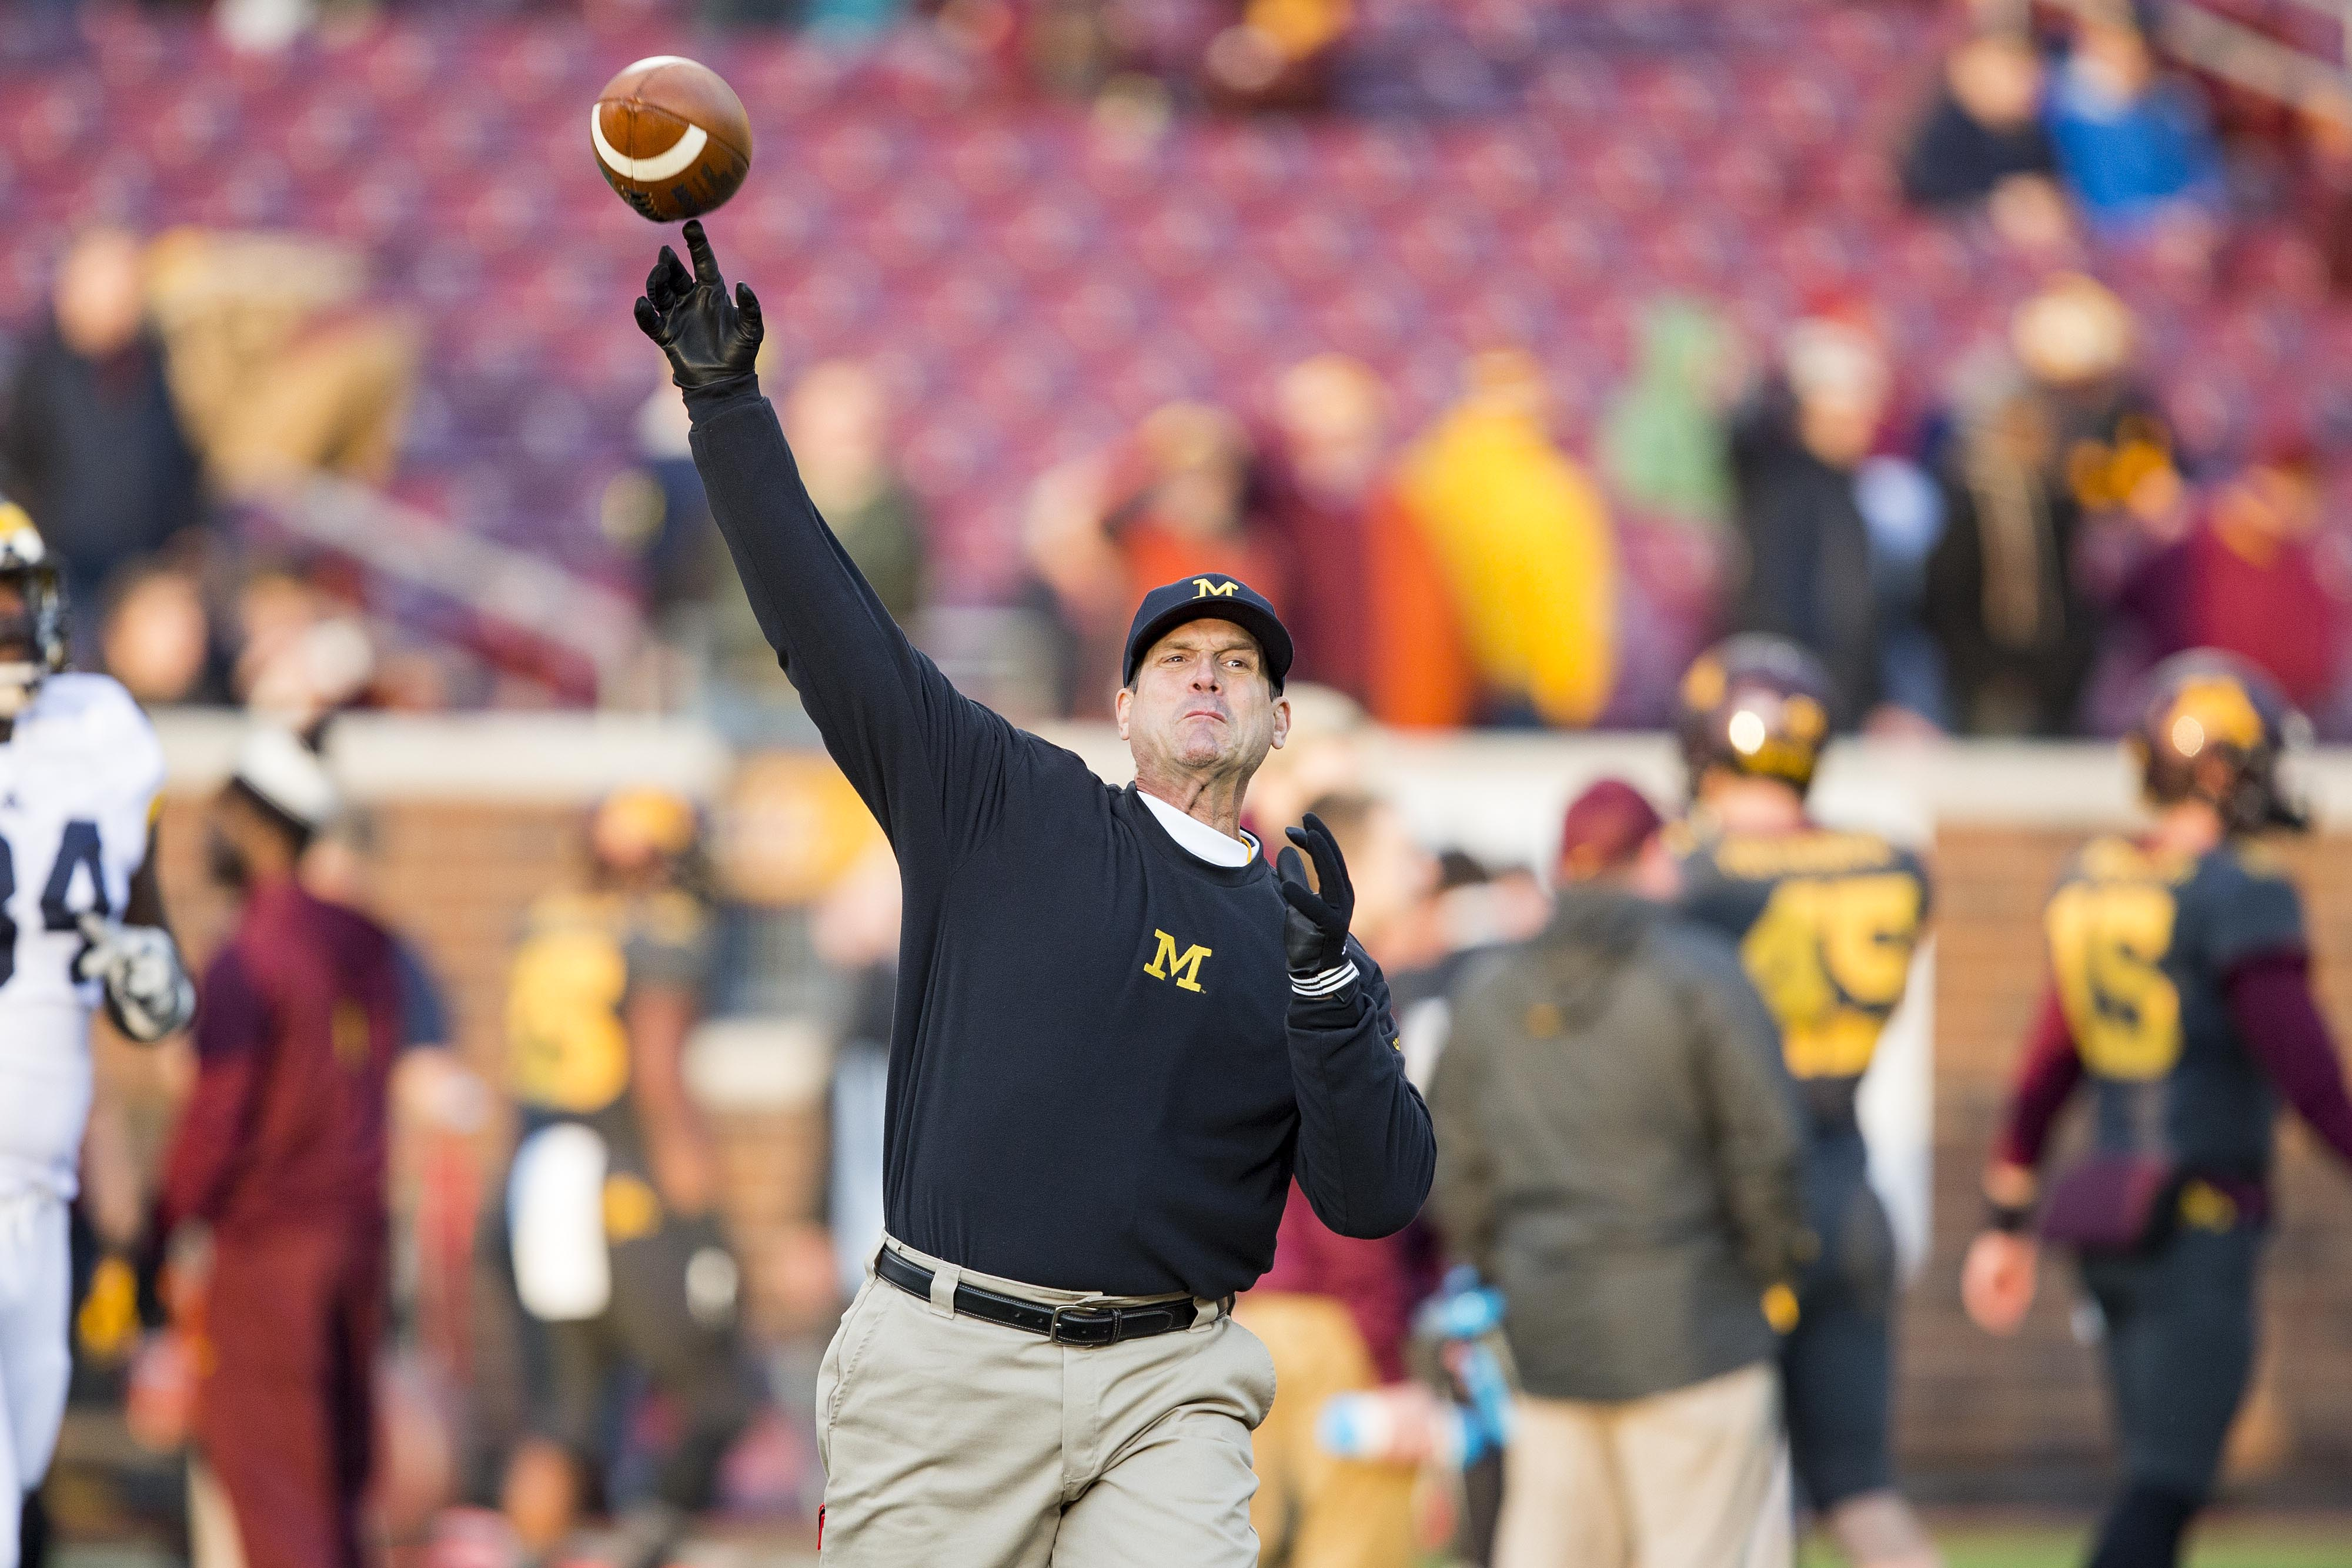 Michigan head coach Jim Harbaugh throws passes during warm ups before a game. (Photo: Jesse Johnson, USA TODAY Sports)